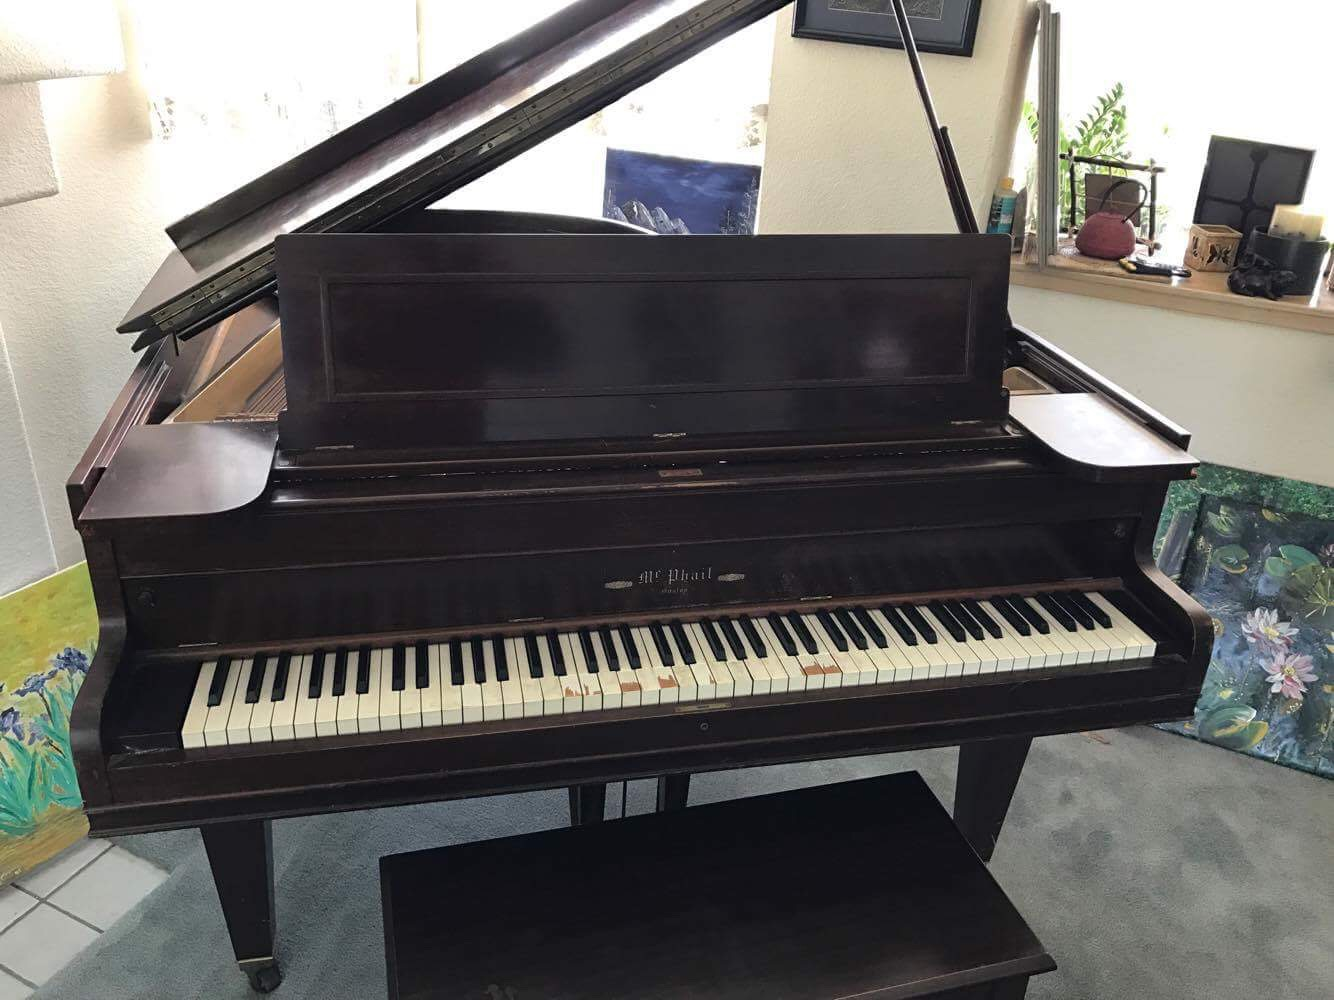 Mcphail Baby Grand No 801640 Hasnt Been Played In 15 Years But